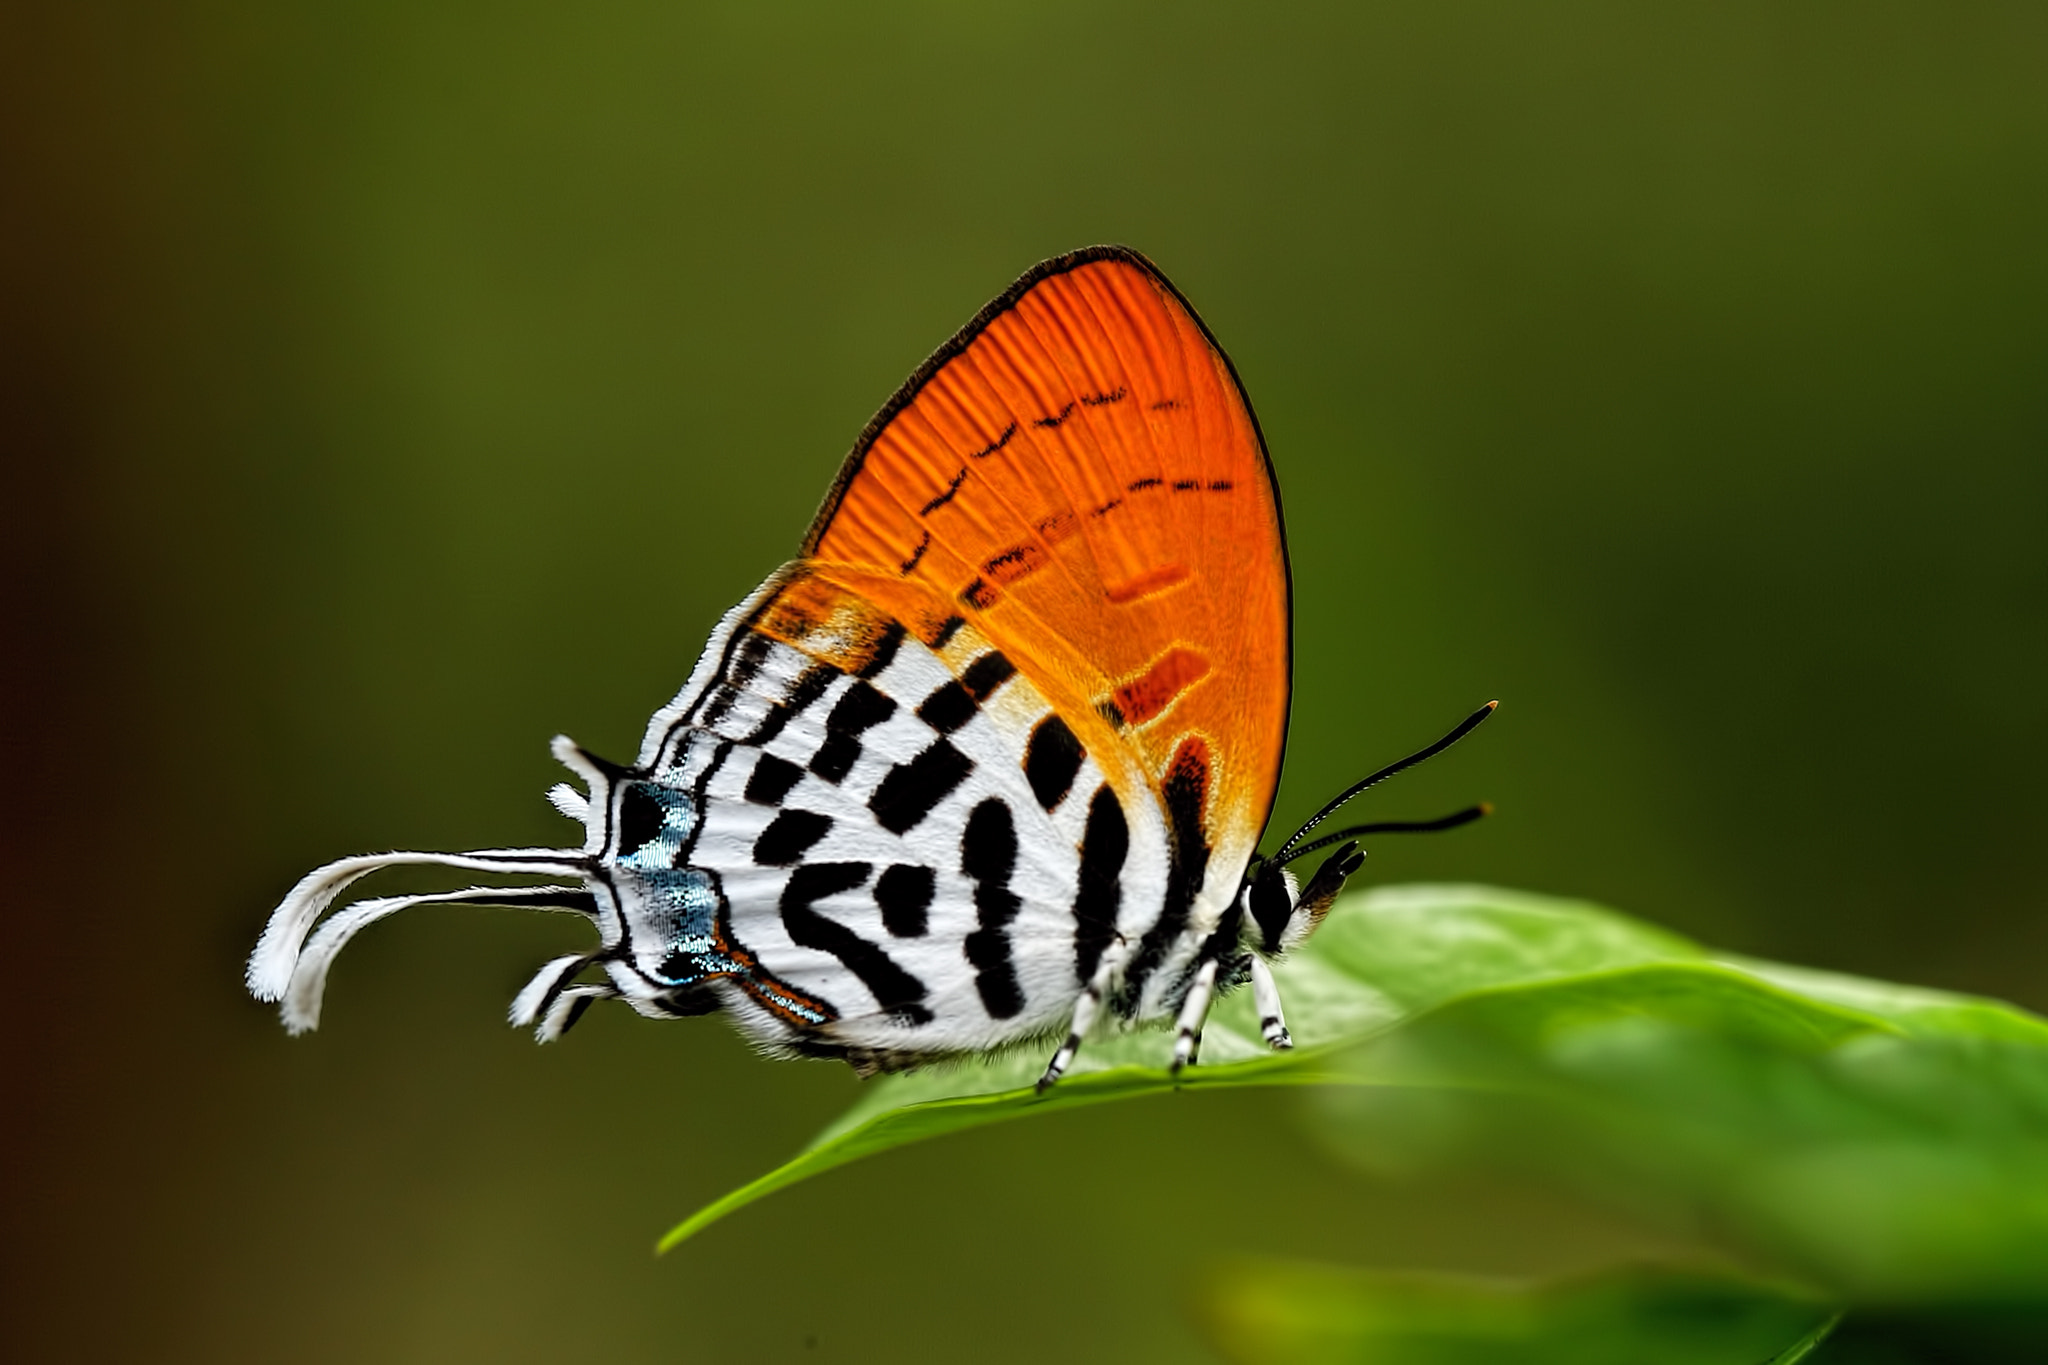 Photograph Butterfly by Sam Tobing on 500px